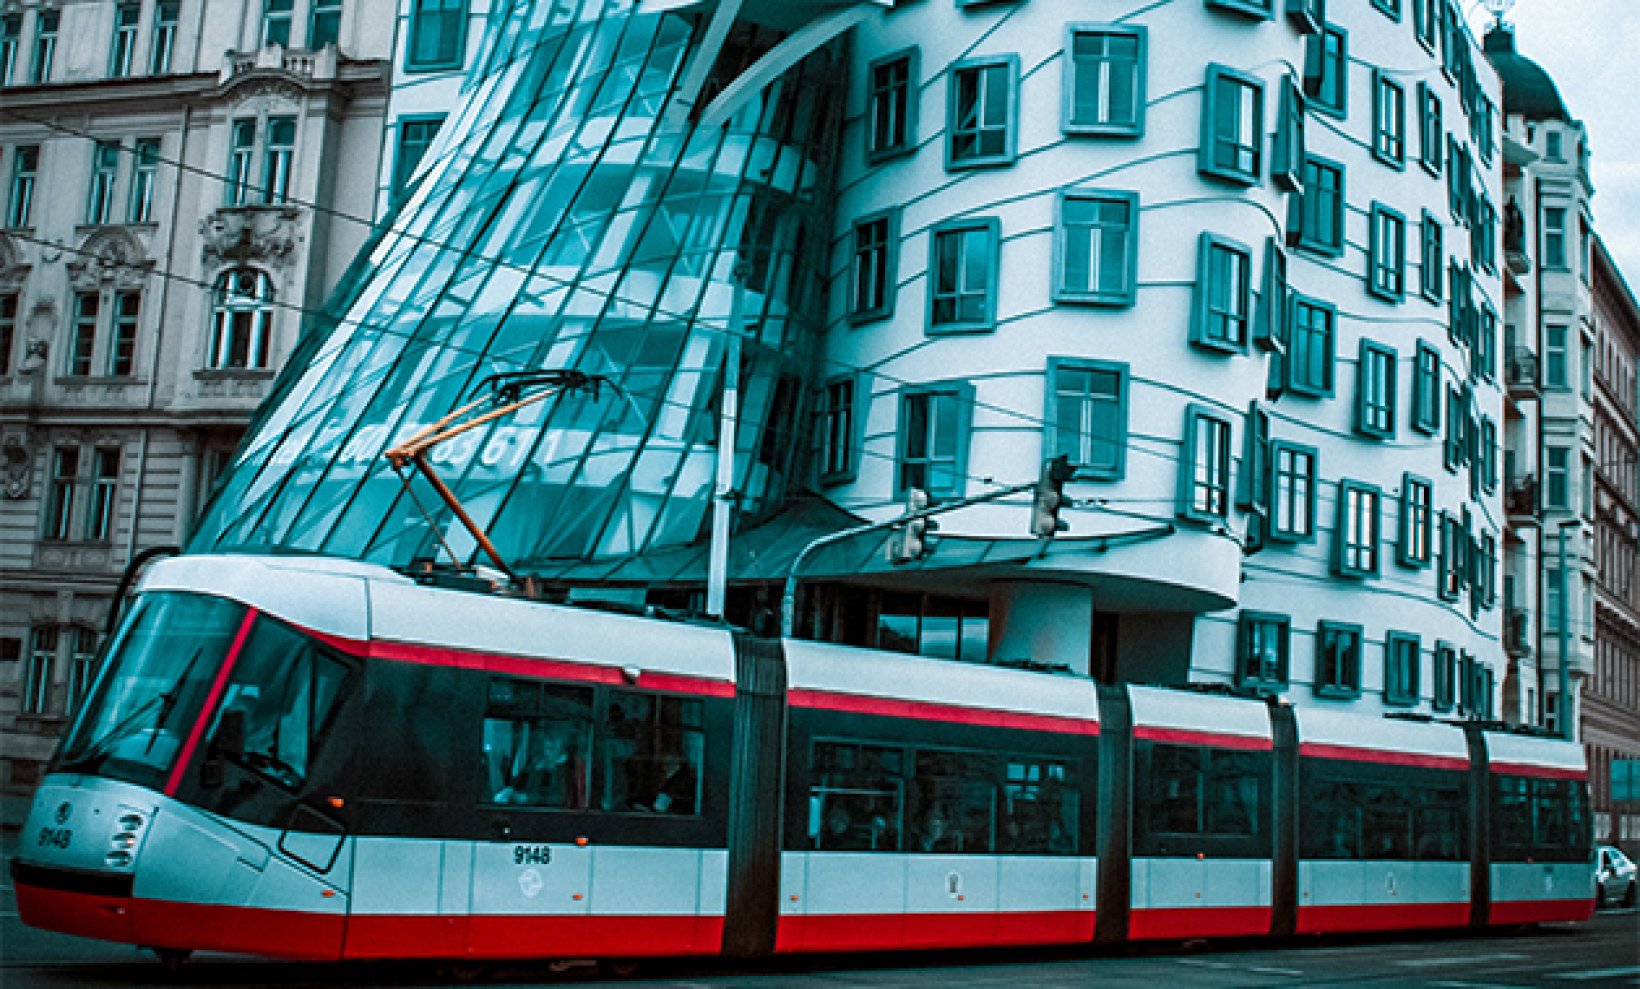 By the end of 2020, the first Galileo-enabled trams in Prague are expected